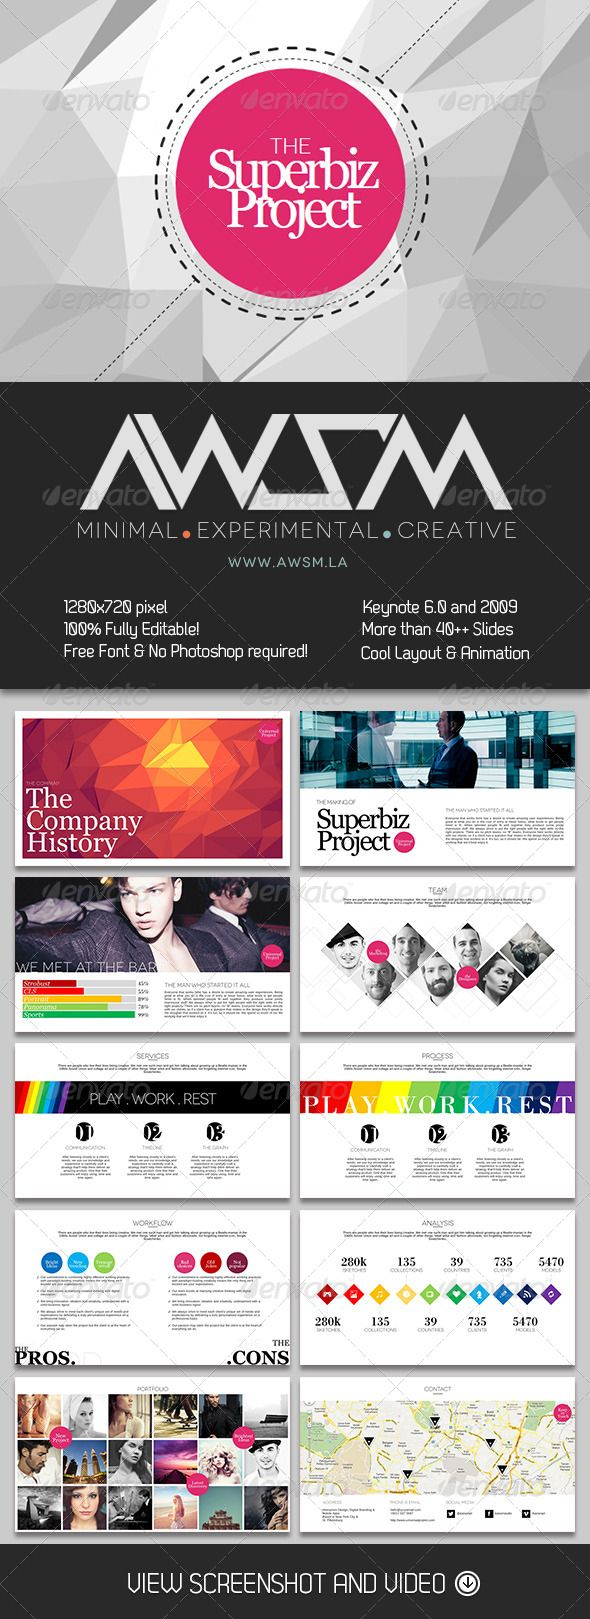 62 best ppt template images on pinterest ppt template step by biz project keynote template business keynote templates ppt designkeynote toneelgroepblik Images